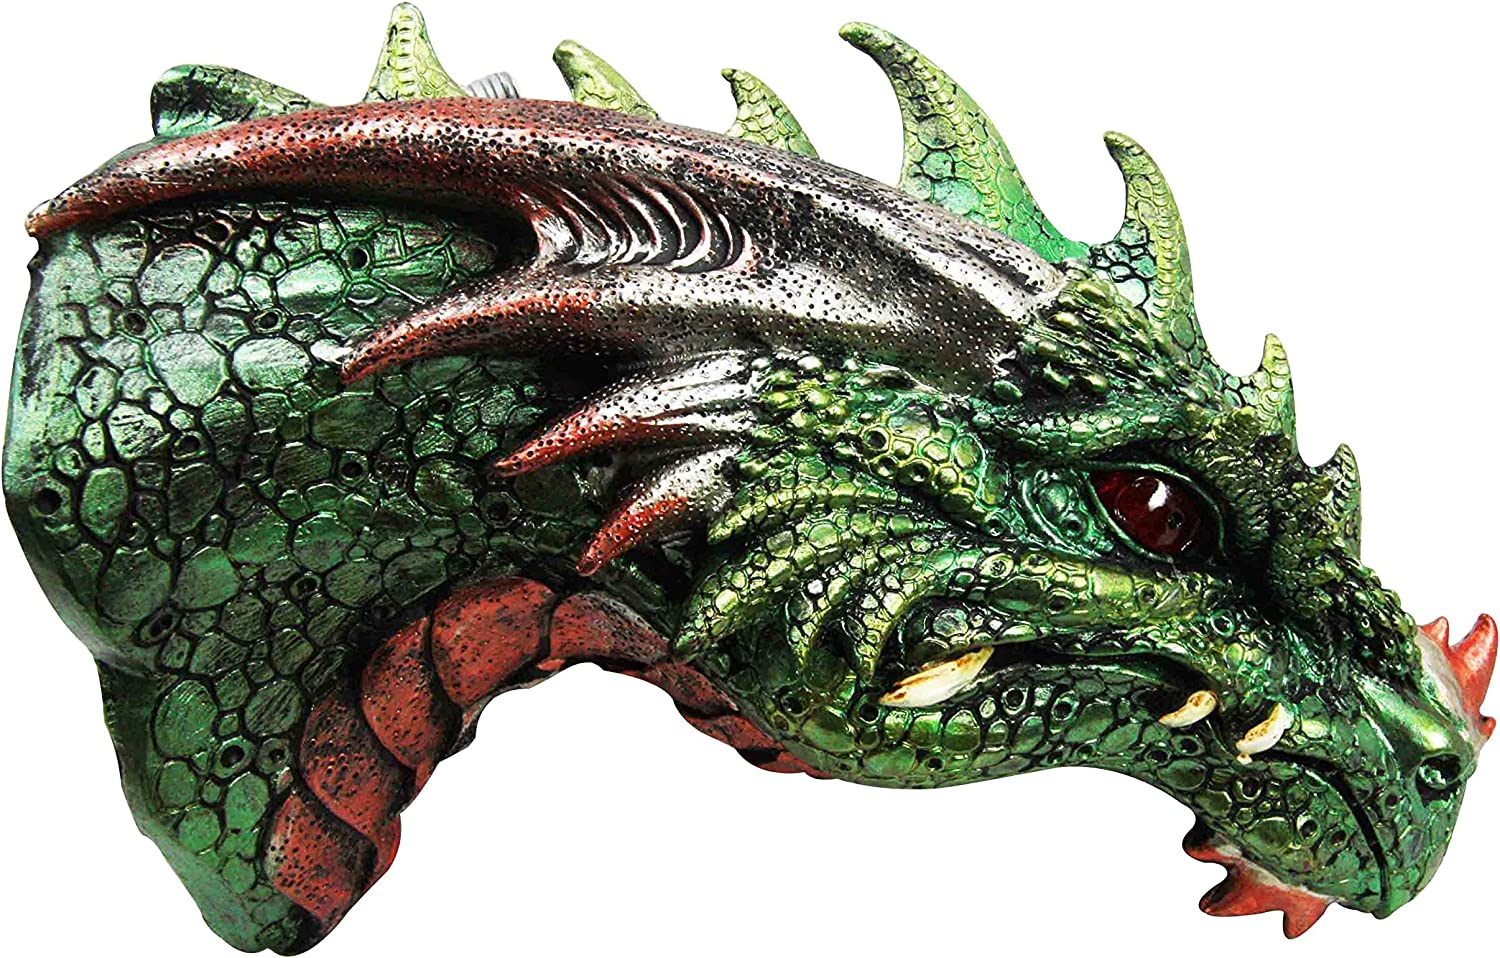 Medieval Castle Dungeon Green Dragon Wall Plaque with LED Illuminated Eyes Sculpture Plaque Home Decor